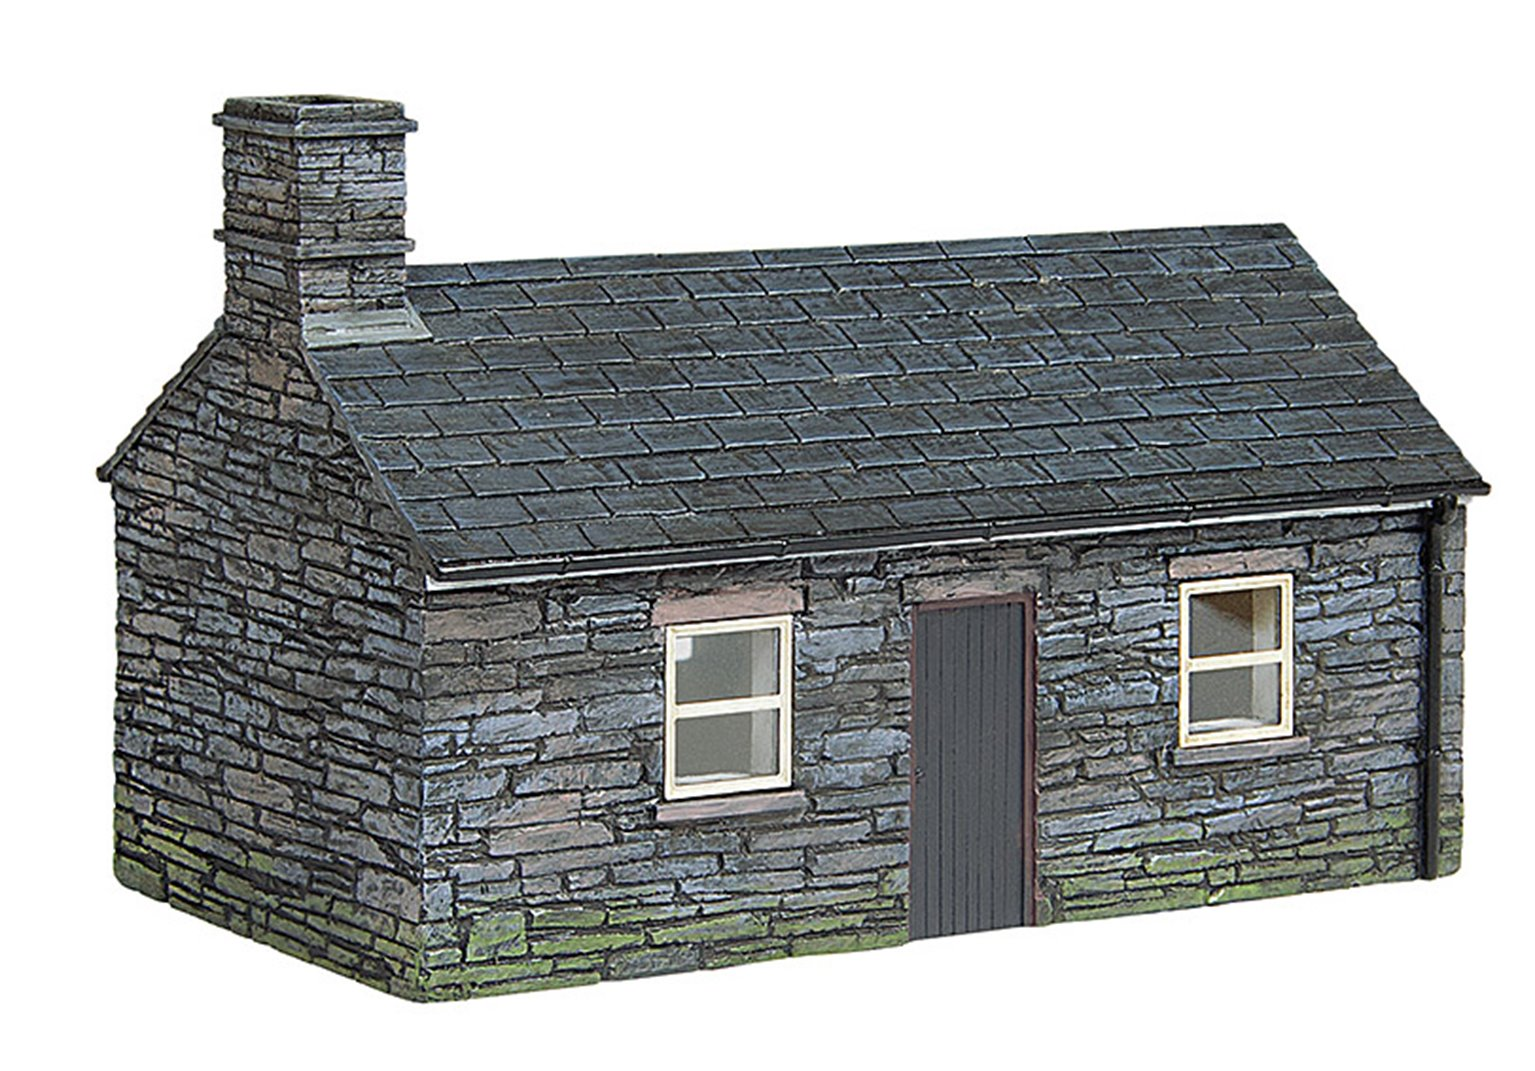 Narrow Gauge Slate Worker's cottage